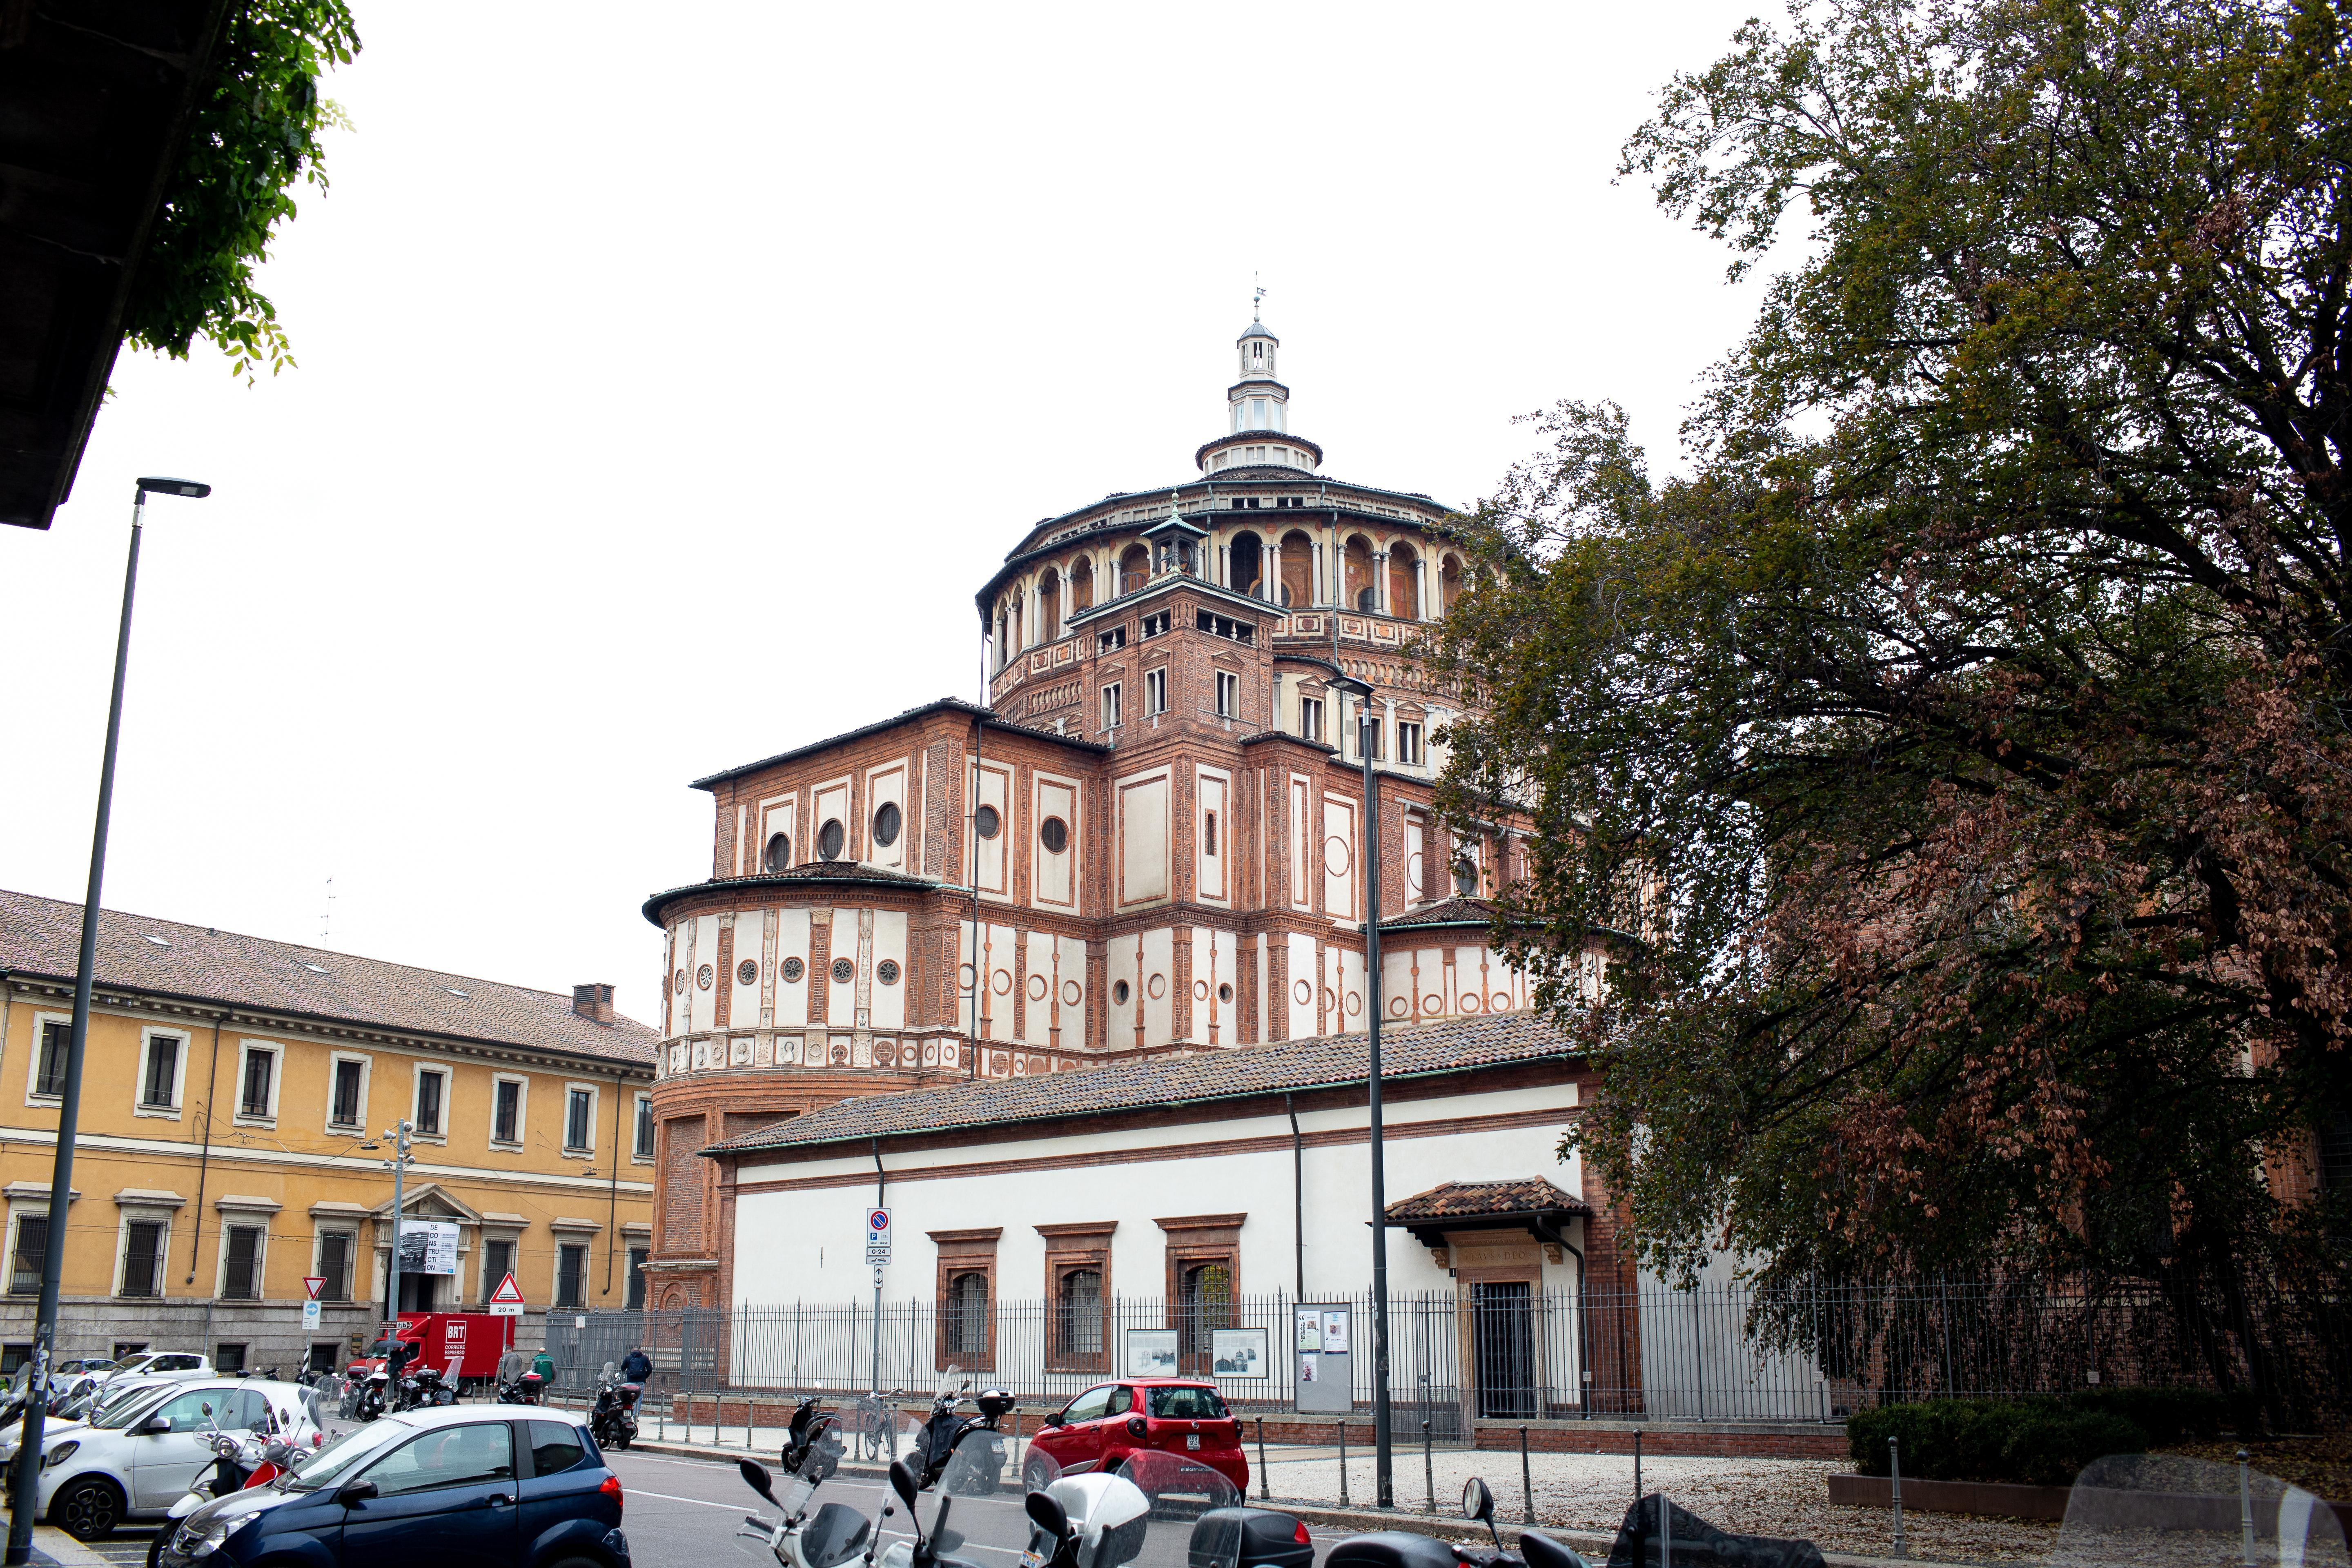 How to Spend 1 Day in Milan